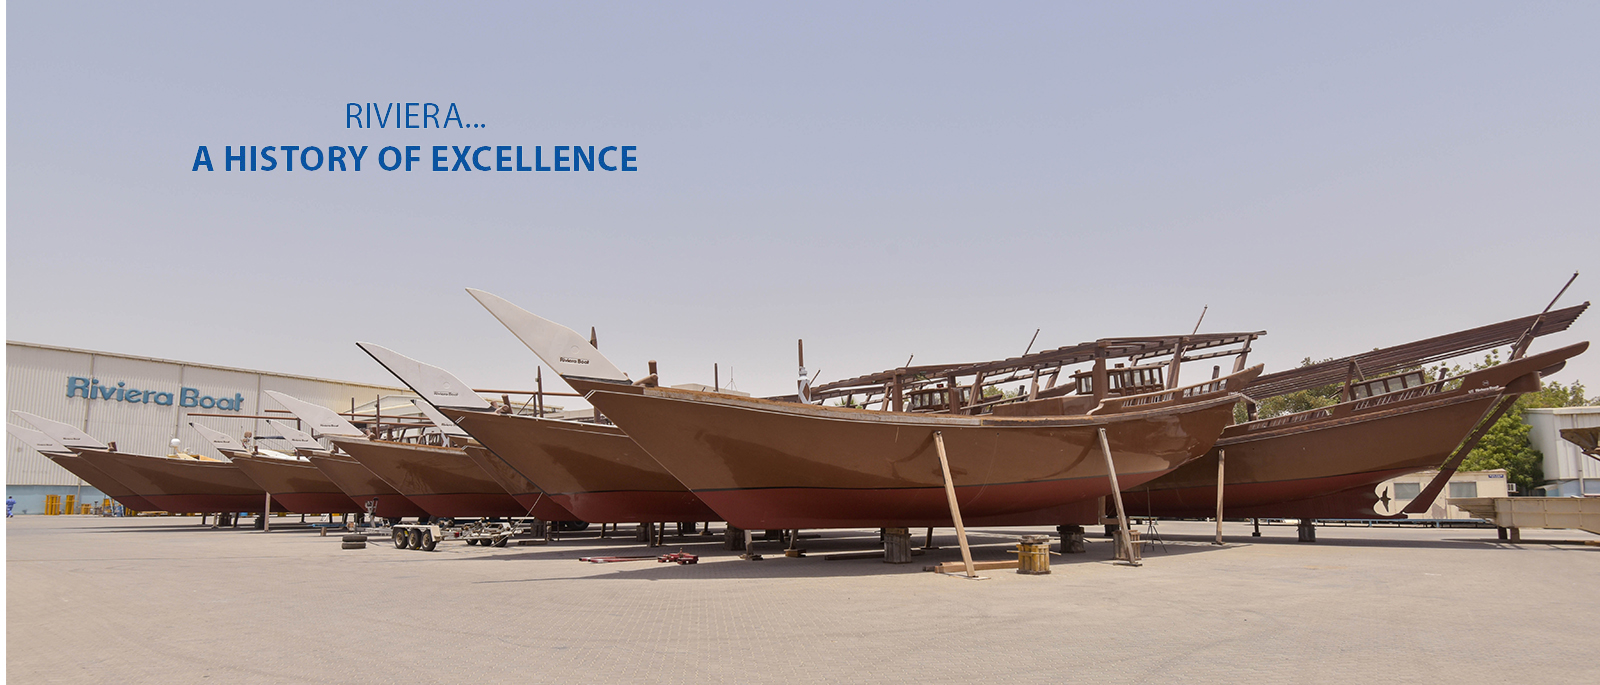 Riviera Boats Yard Pools Trading In Uae